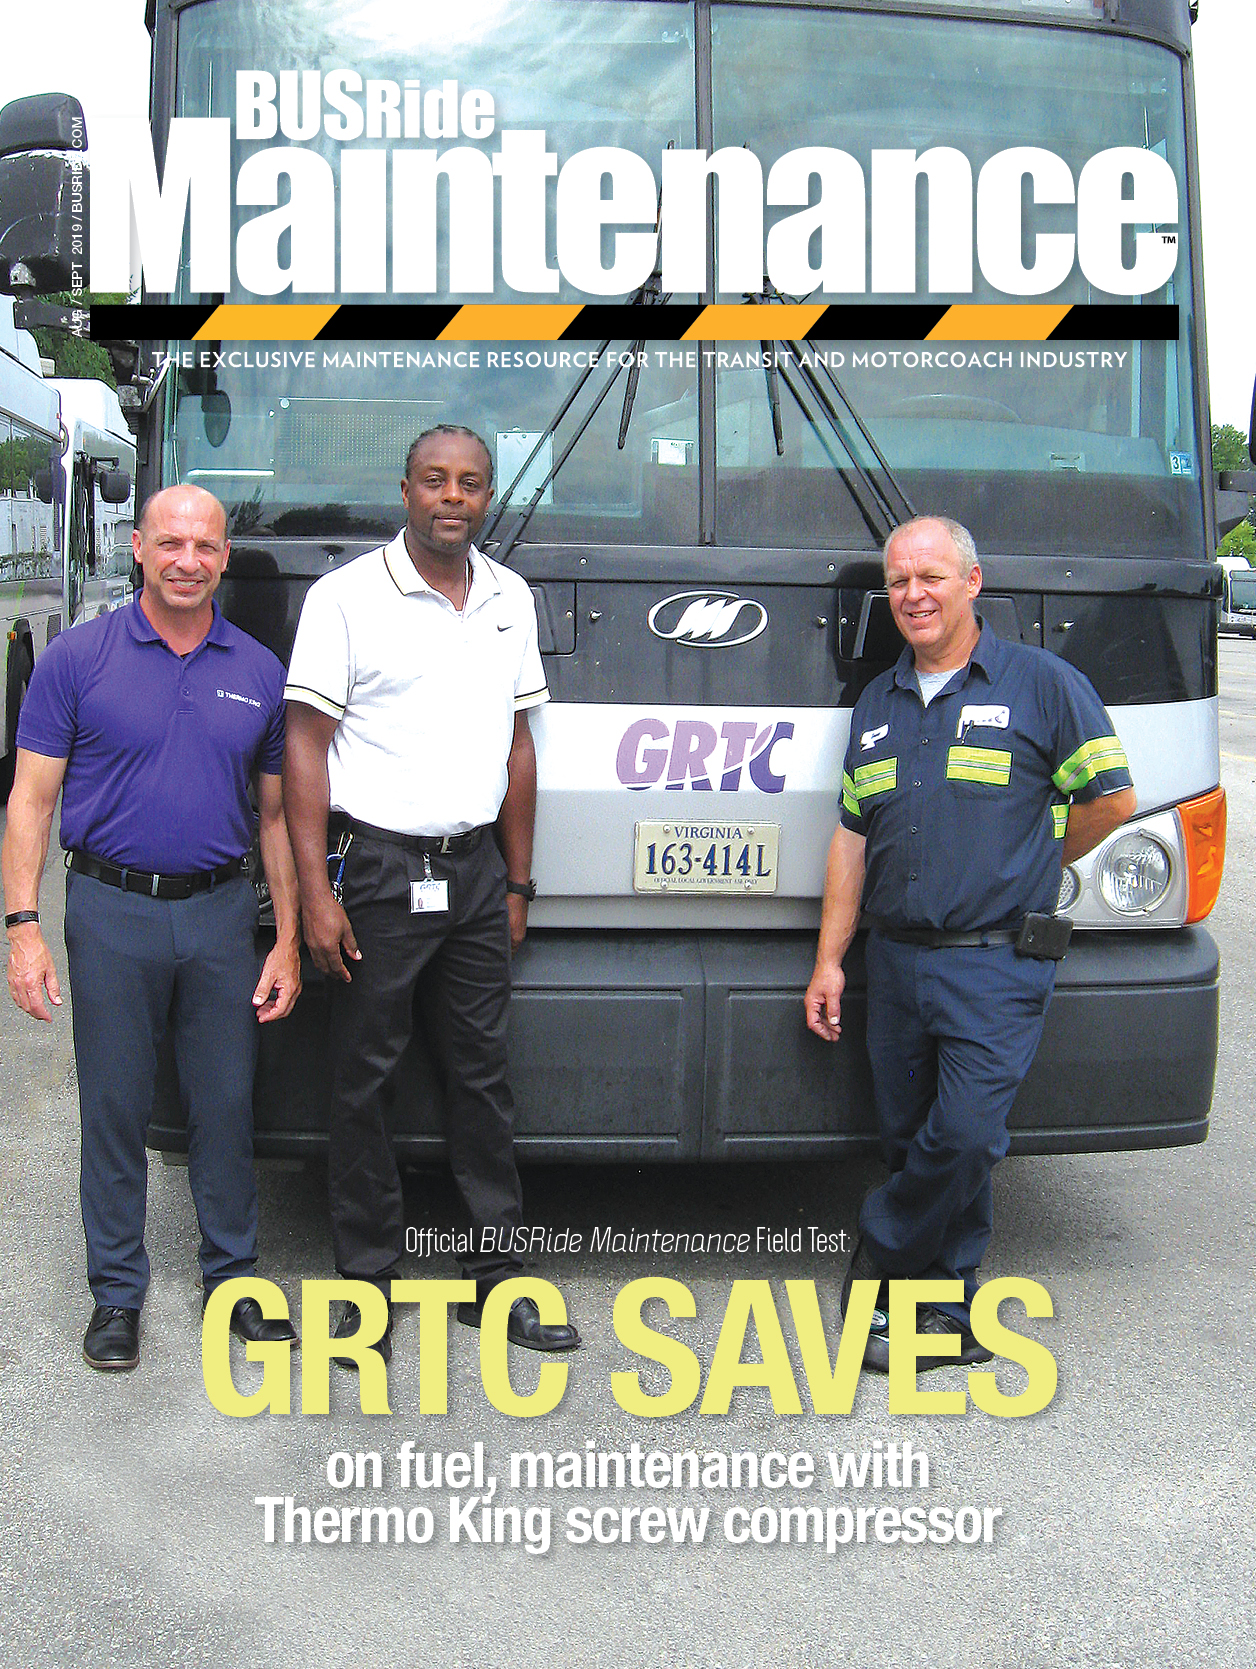 GRTC saves on fuel, maintenance with Thermo King screw compressor